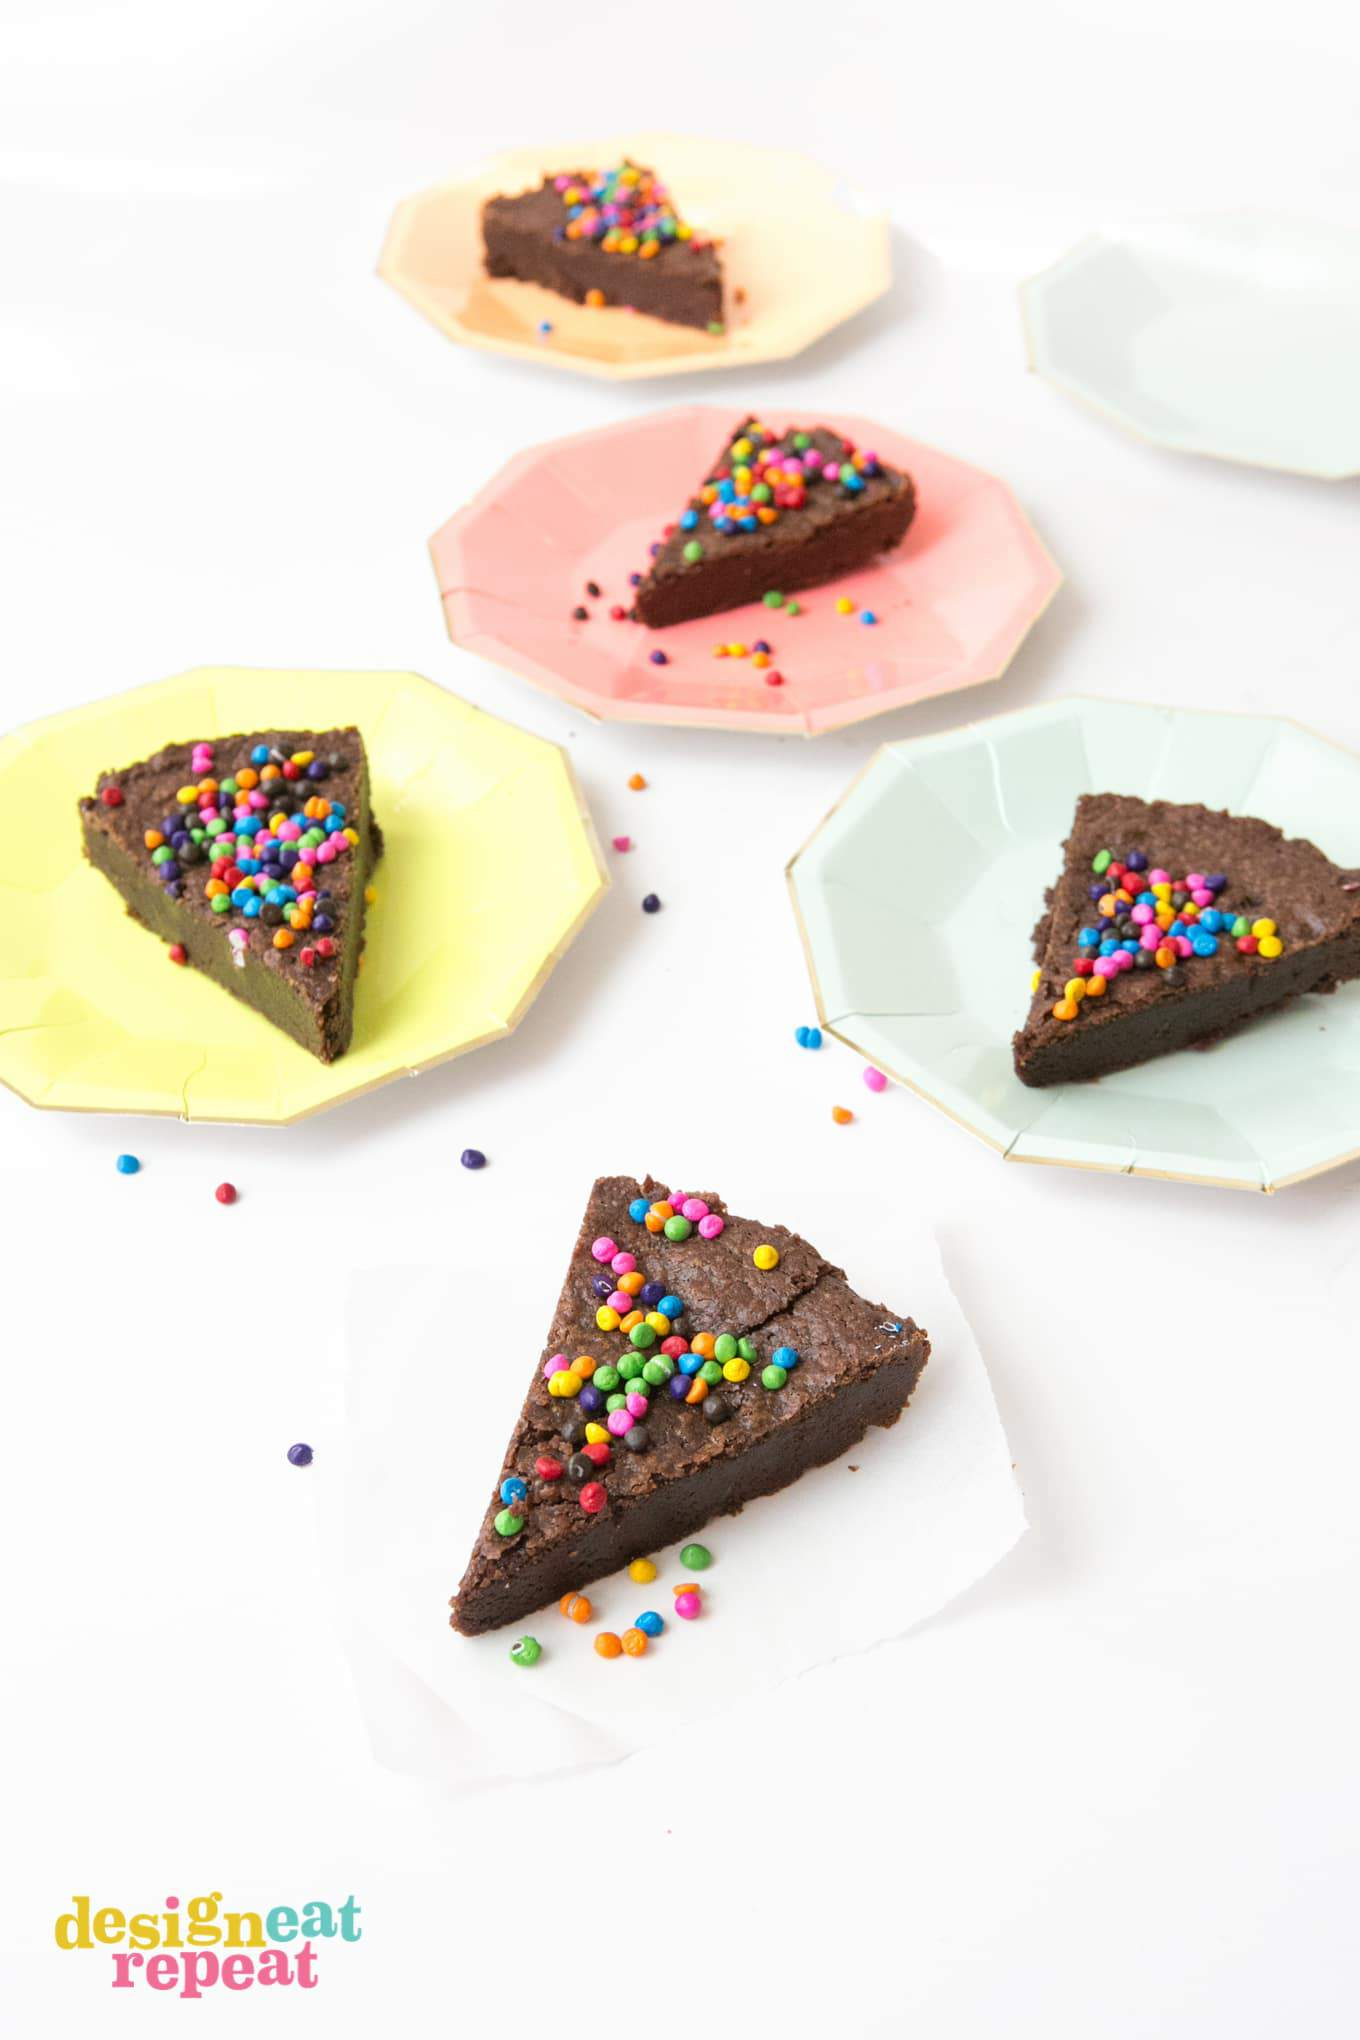 Triangle slices of brownie pie with rainbow chocolate chip sprinkles on top.